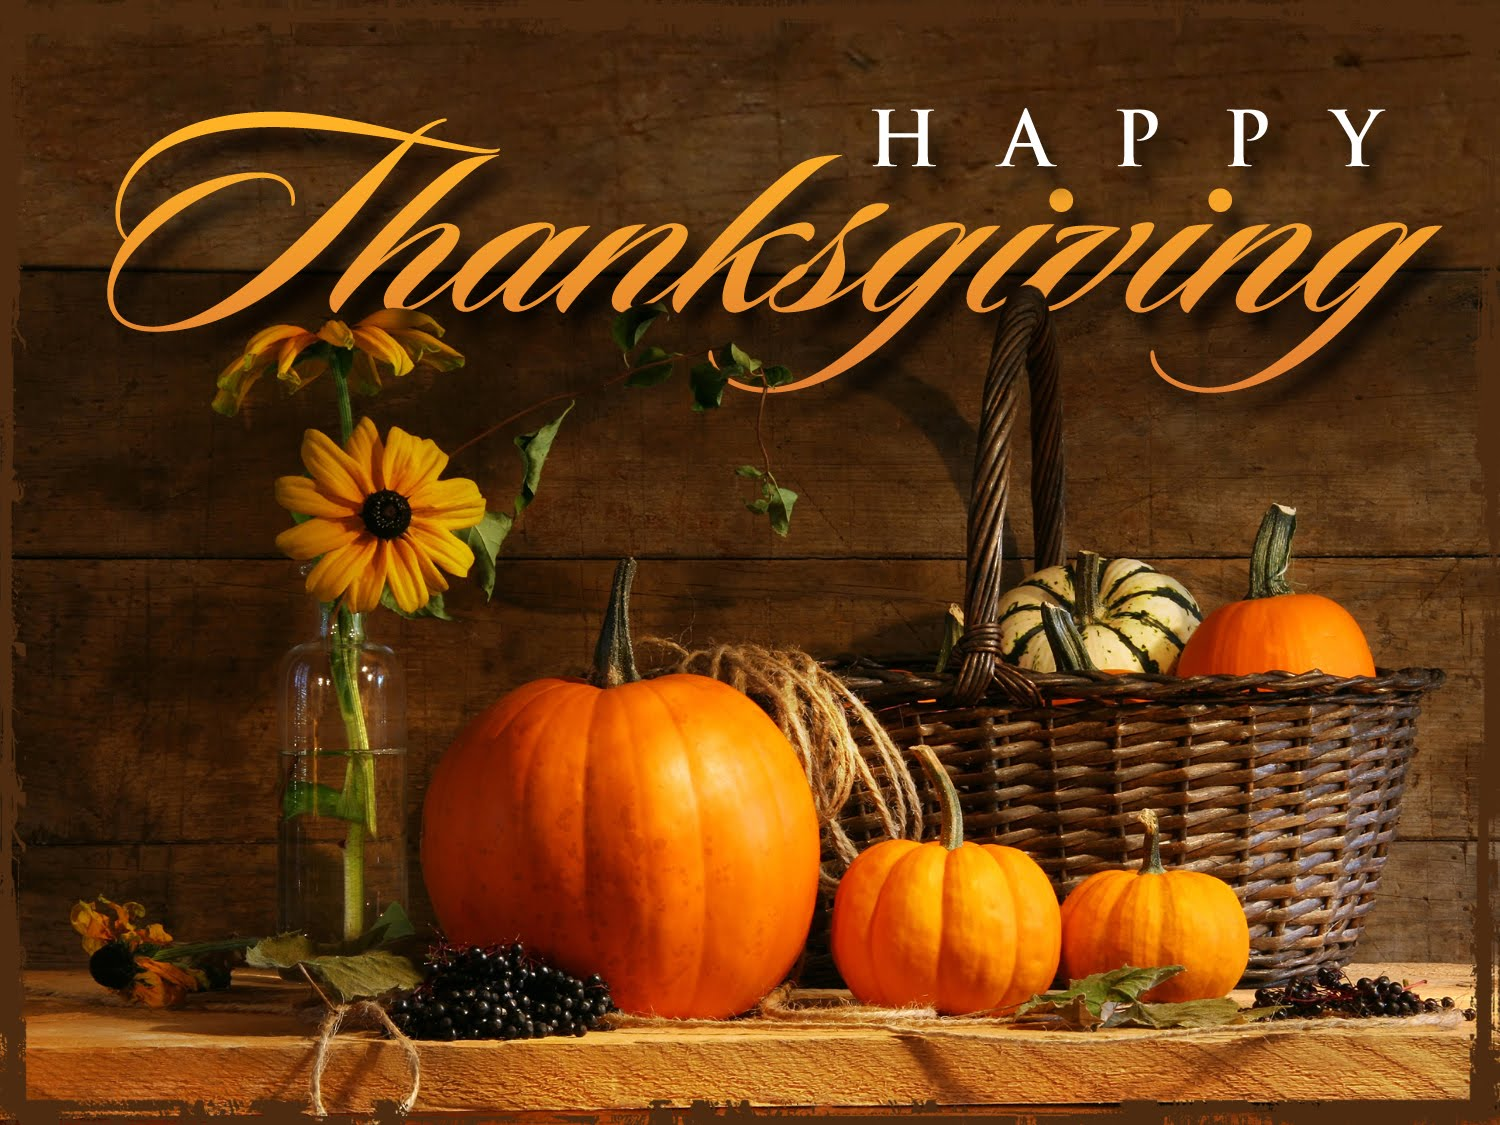 Have a safe Thanksgiving!